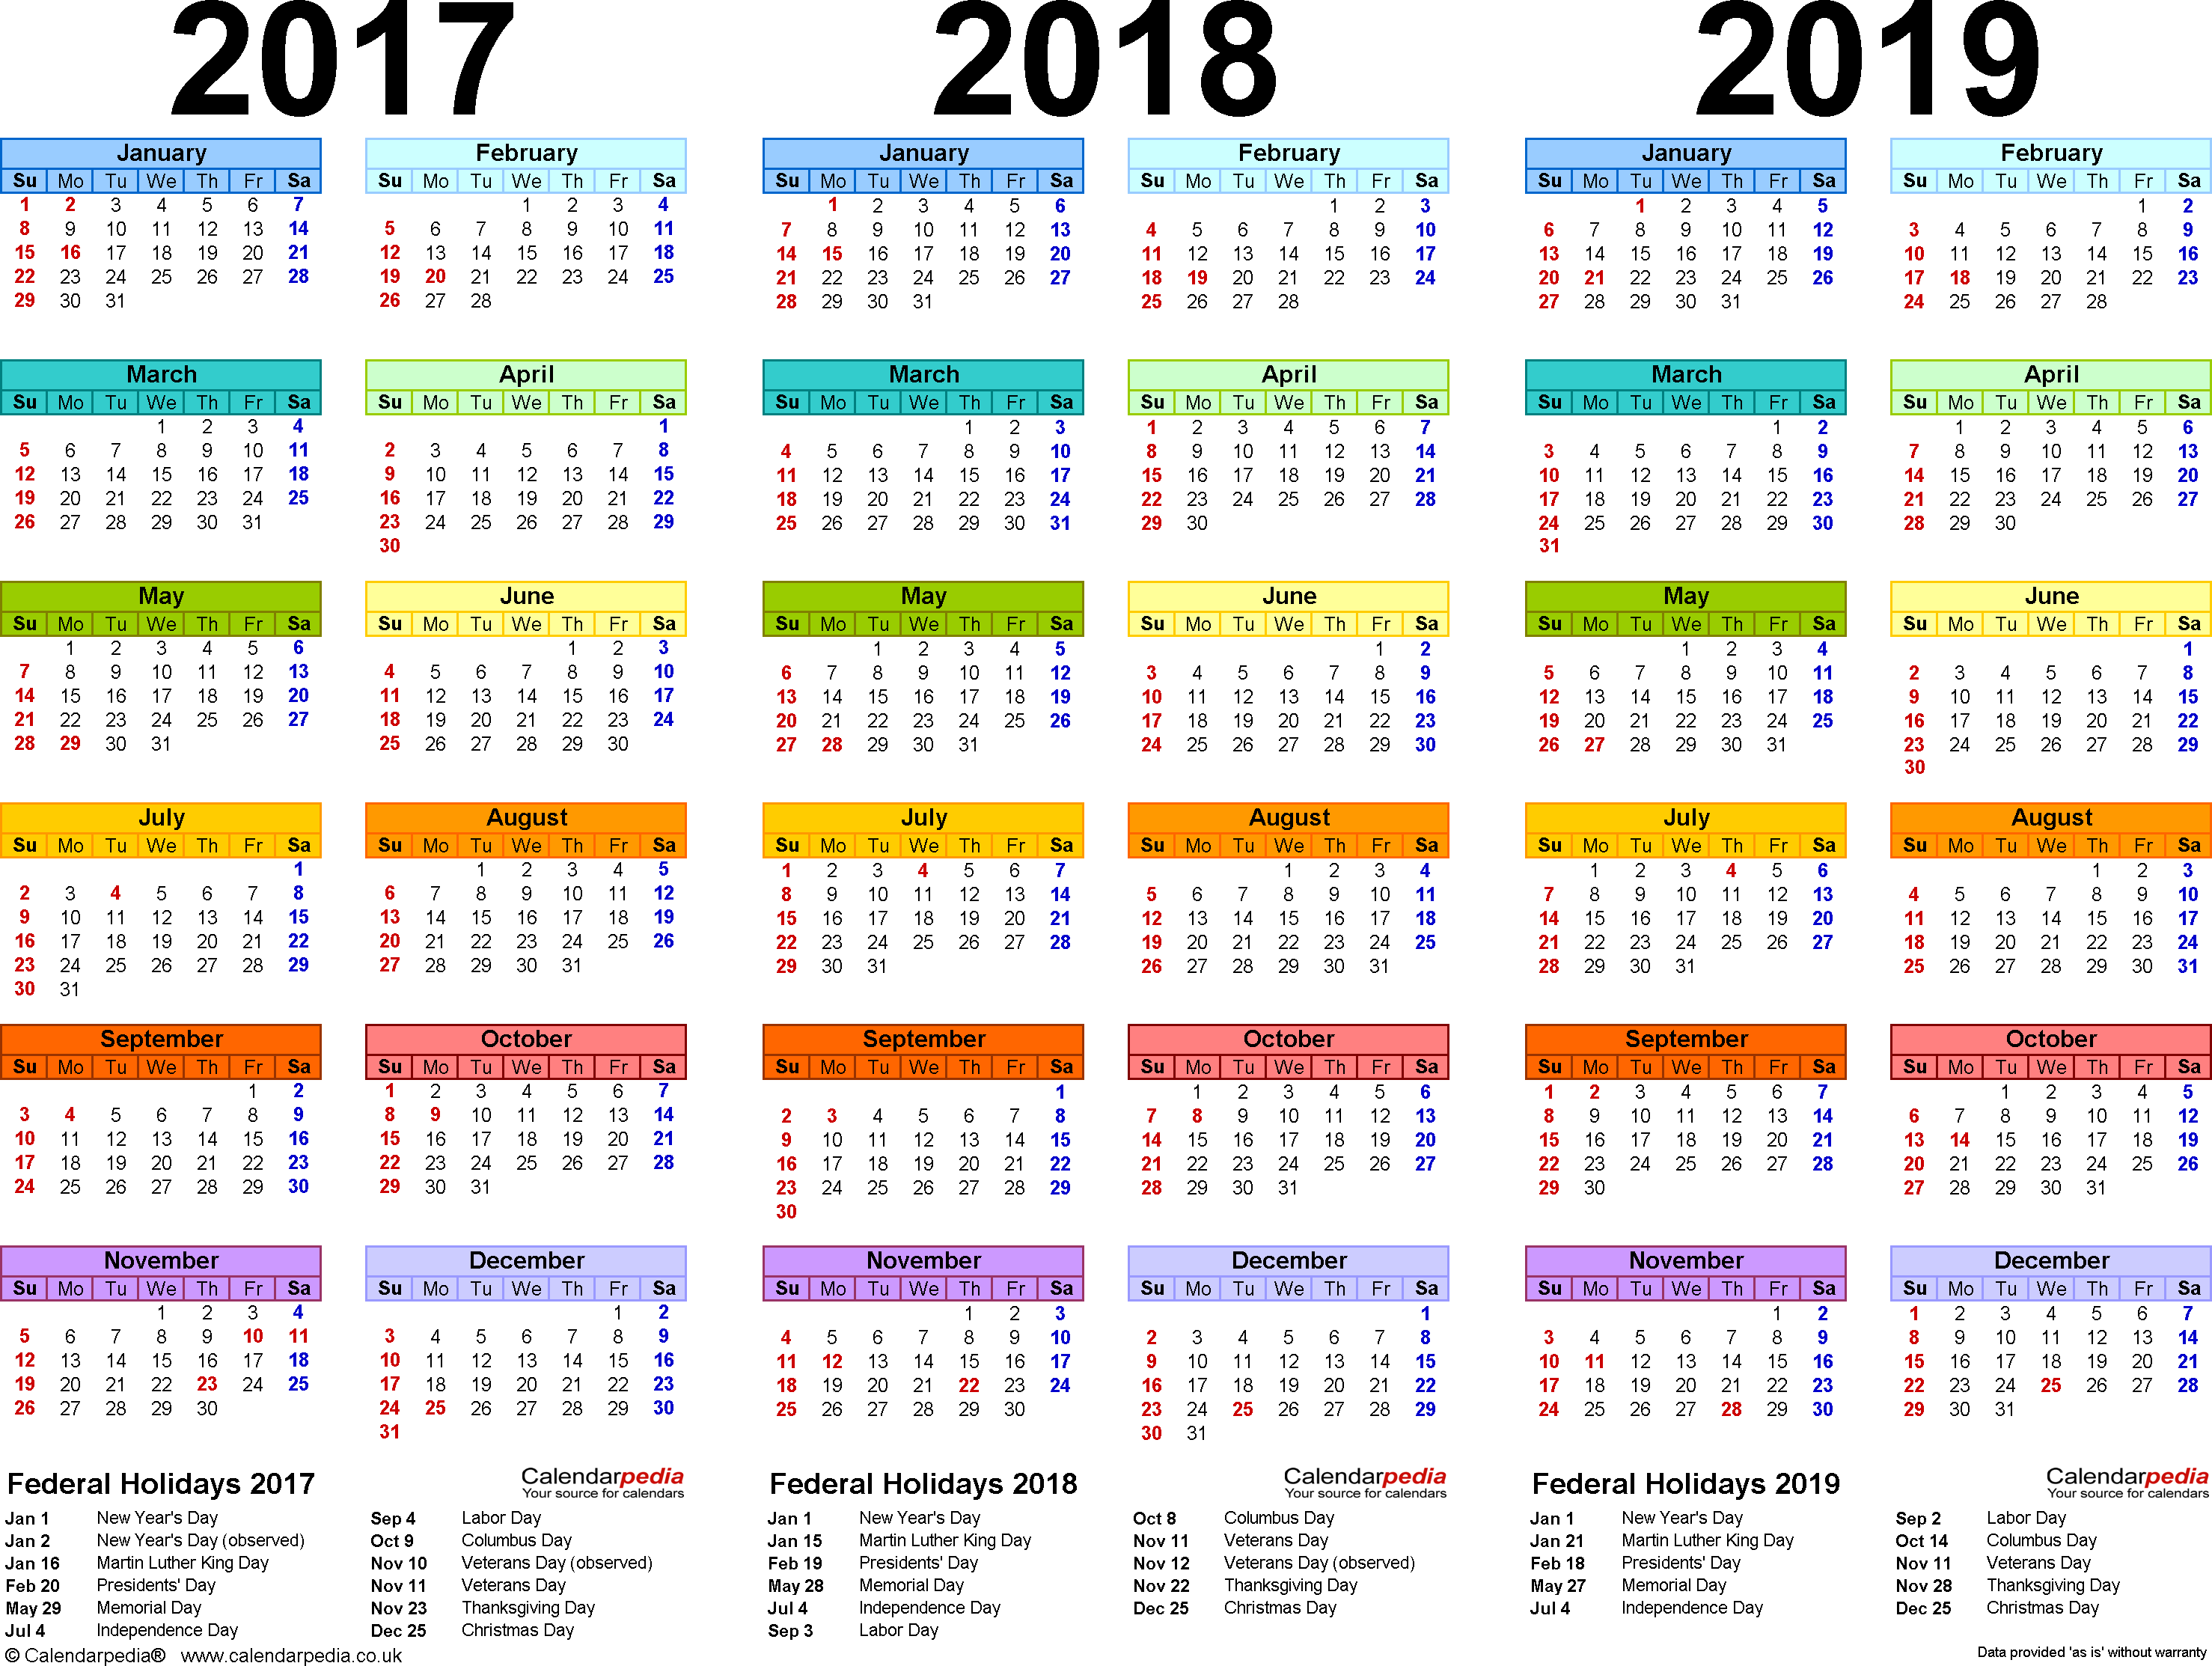 Template 1: Excel template for three year calendar 2017-2019 (landscape orientation, 1 page, in color)